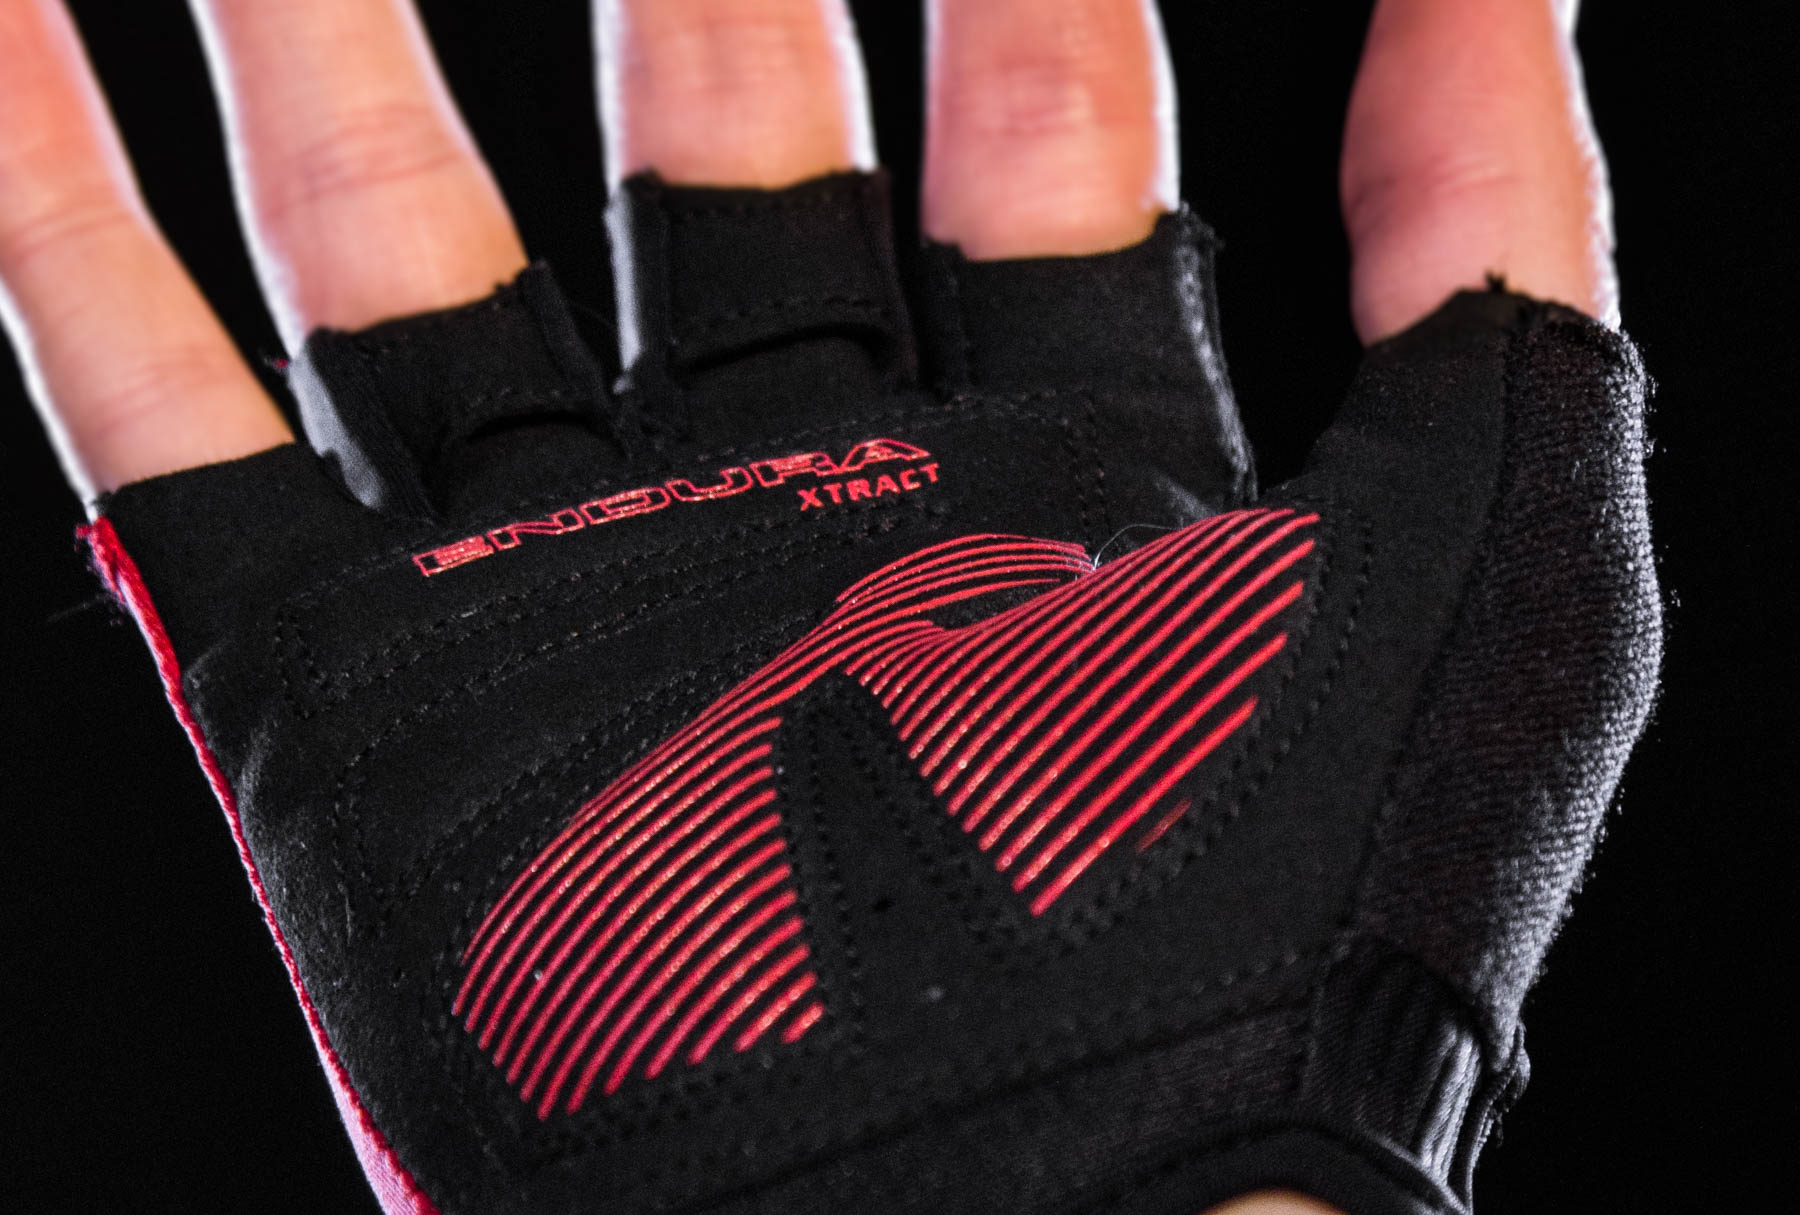 Palmistry™ technology with gel padding